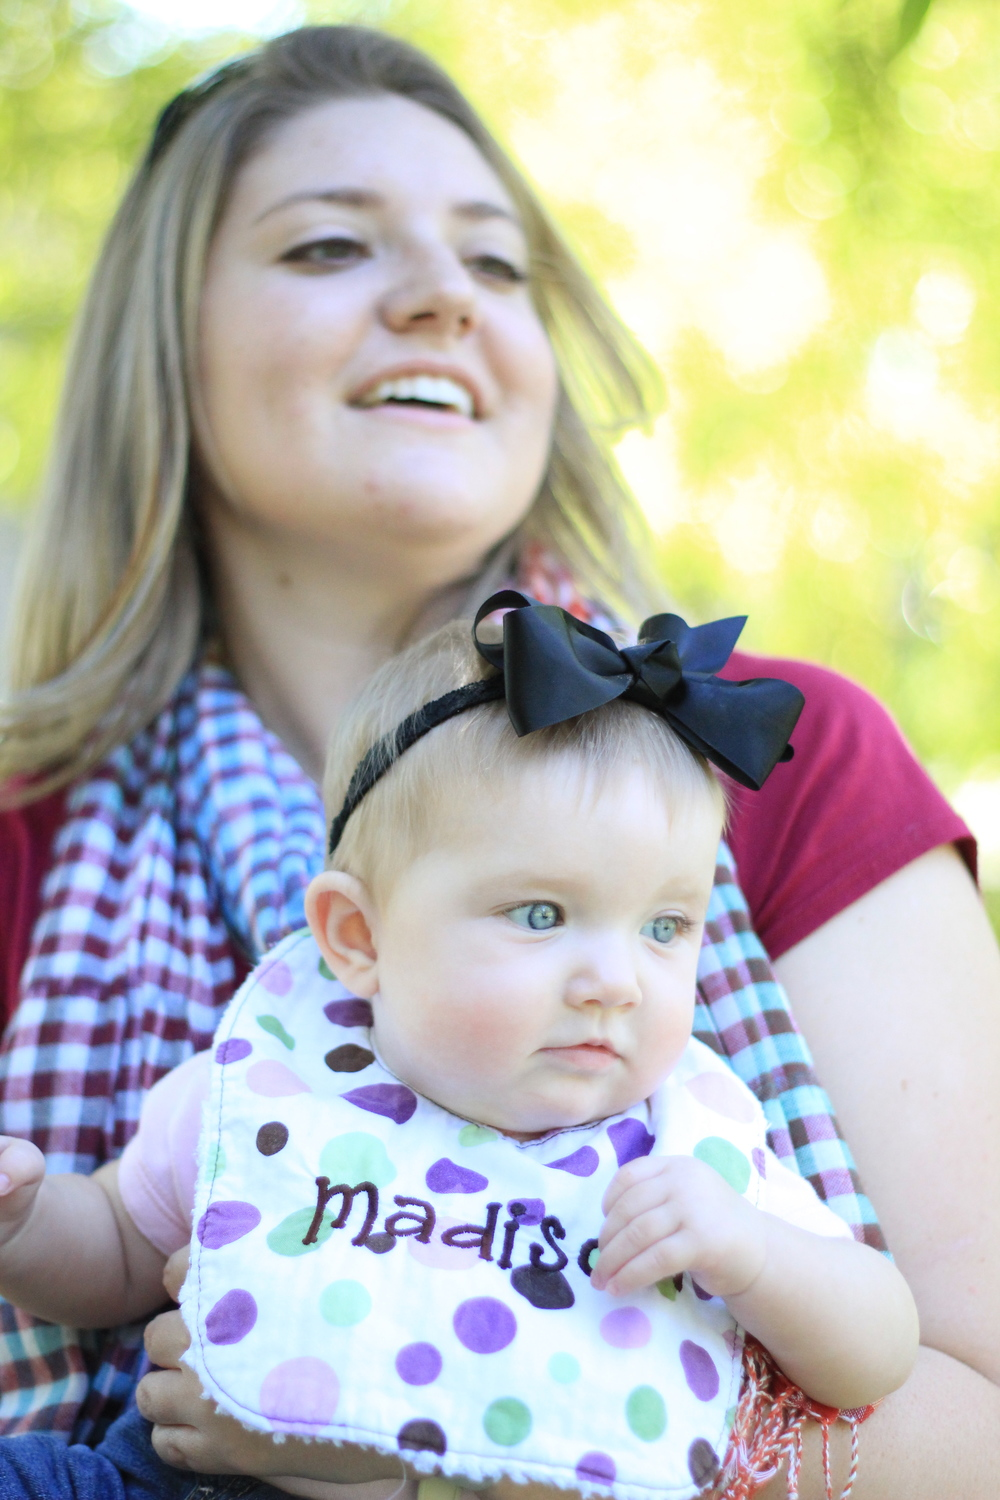 Picnic Pics by @meredithteasley featuring #BabyMadison